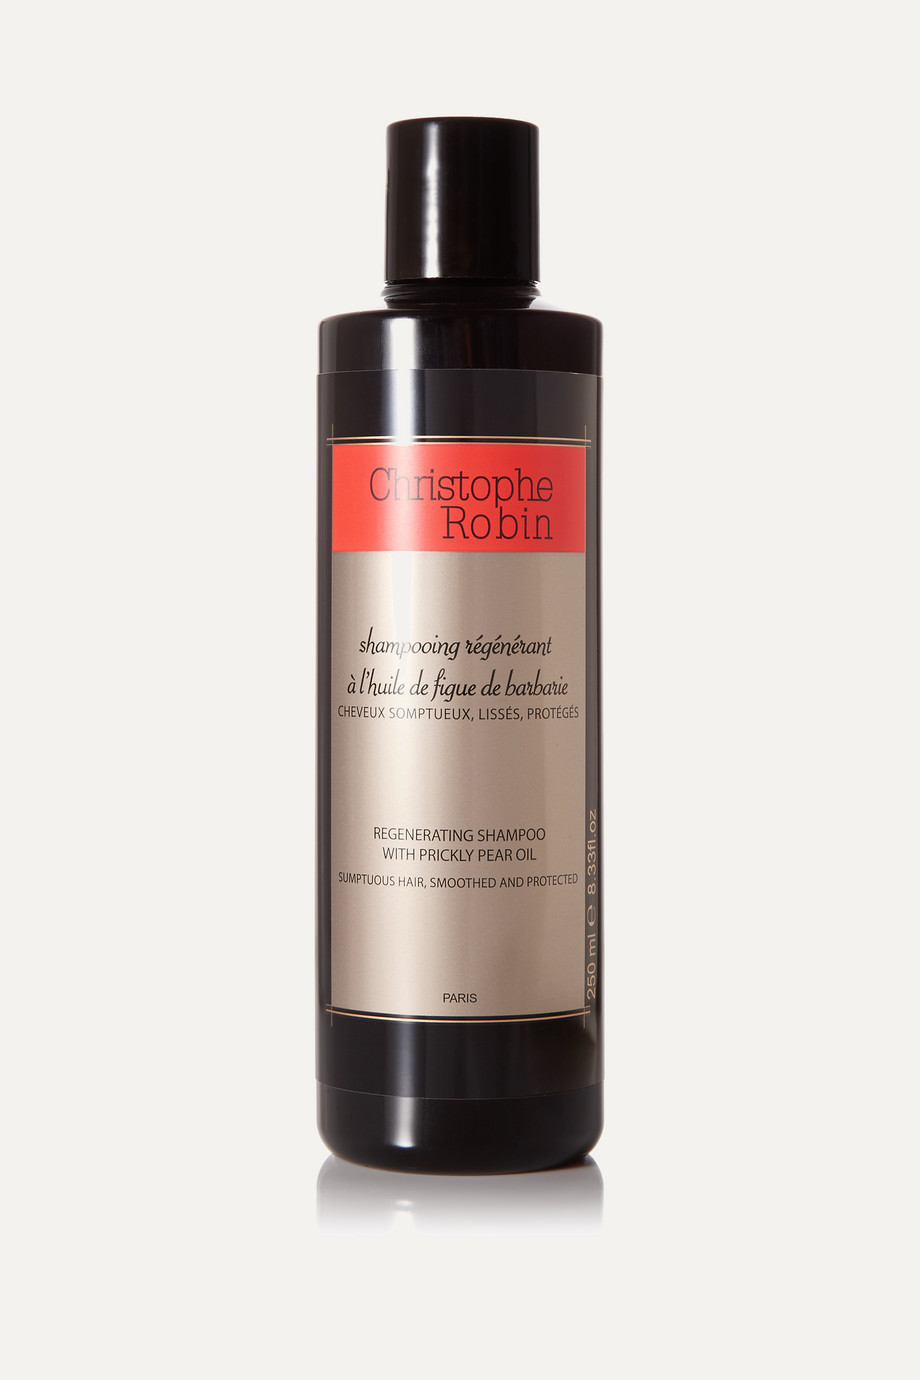 Christophe Robin Regenerating Shampoo, 250ml